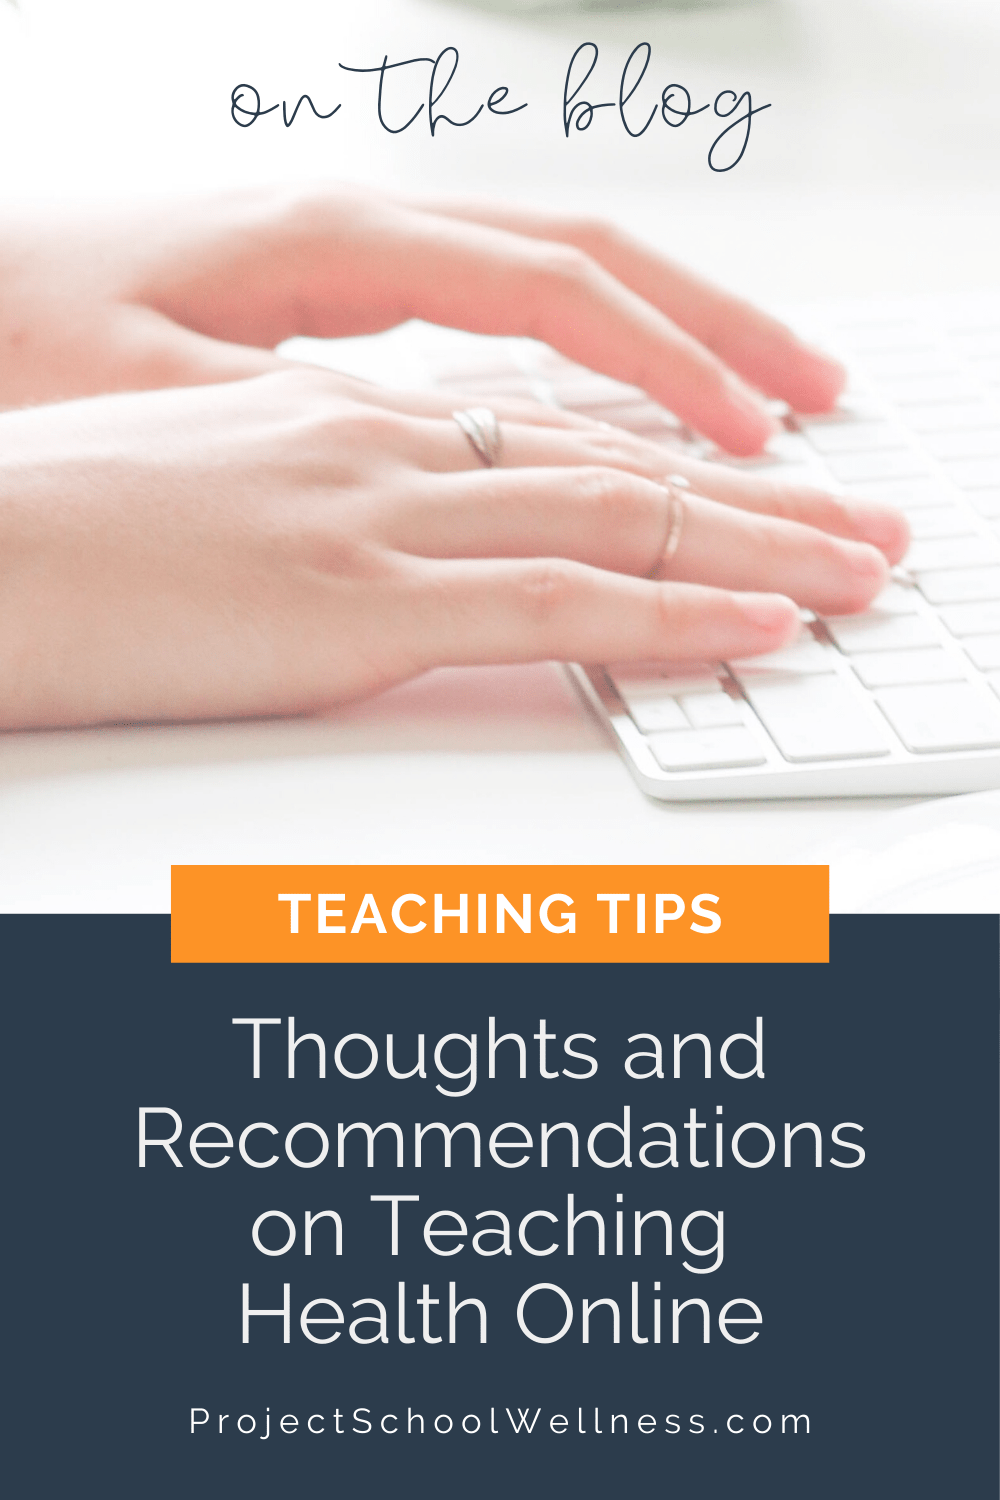 Health Teaching Tips - Thoughts and Recommendations for Teaching Health Online - Digital Learning Tips and Tricks